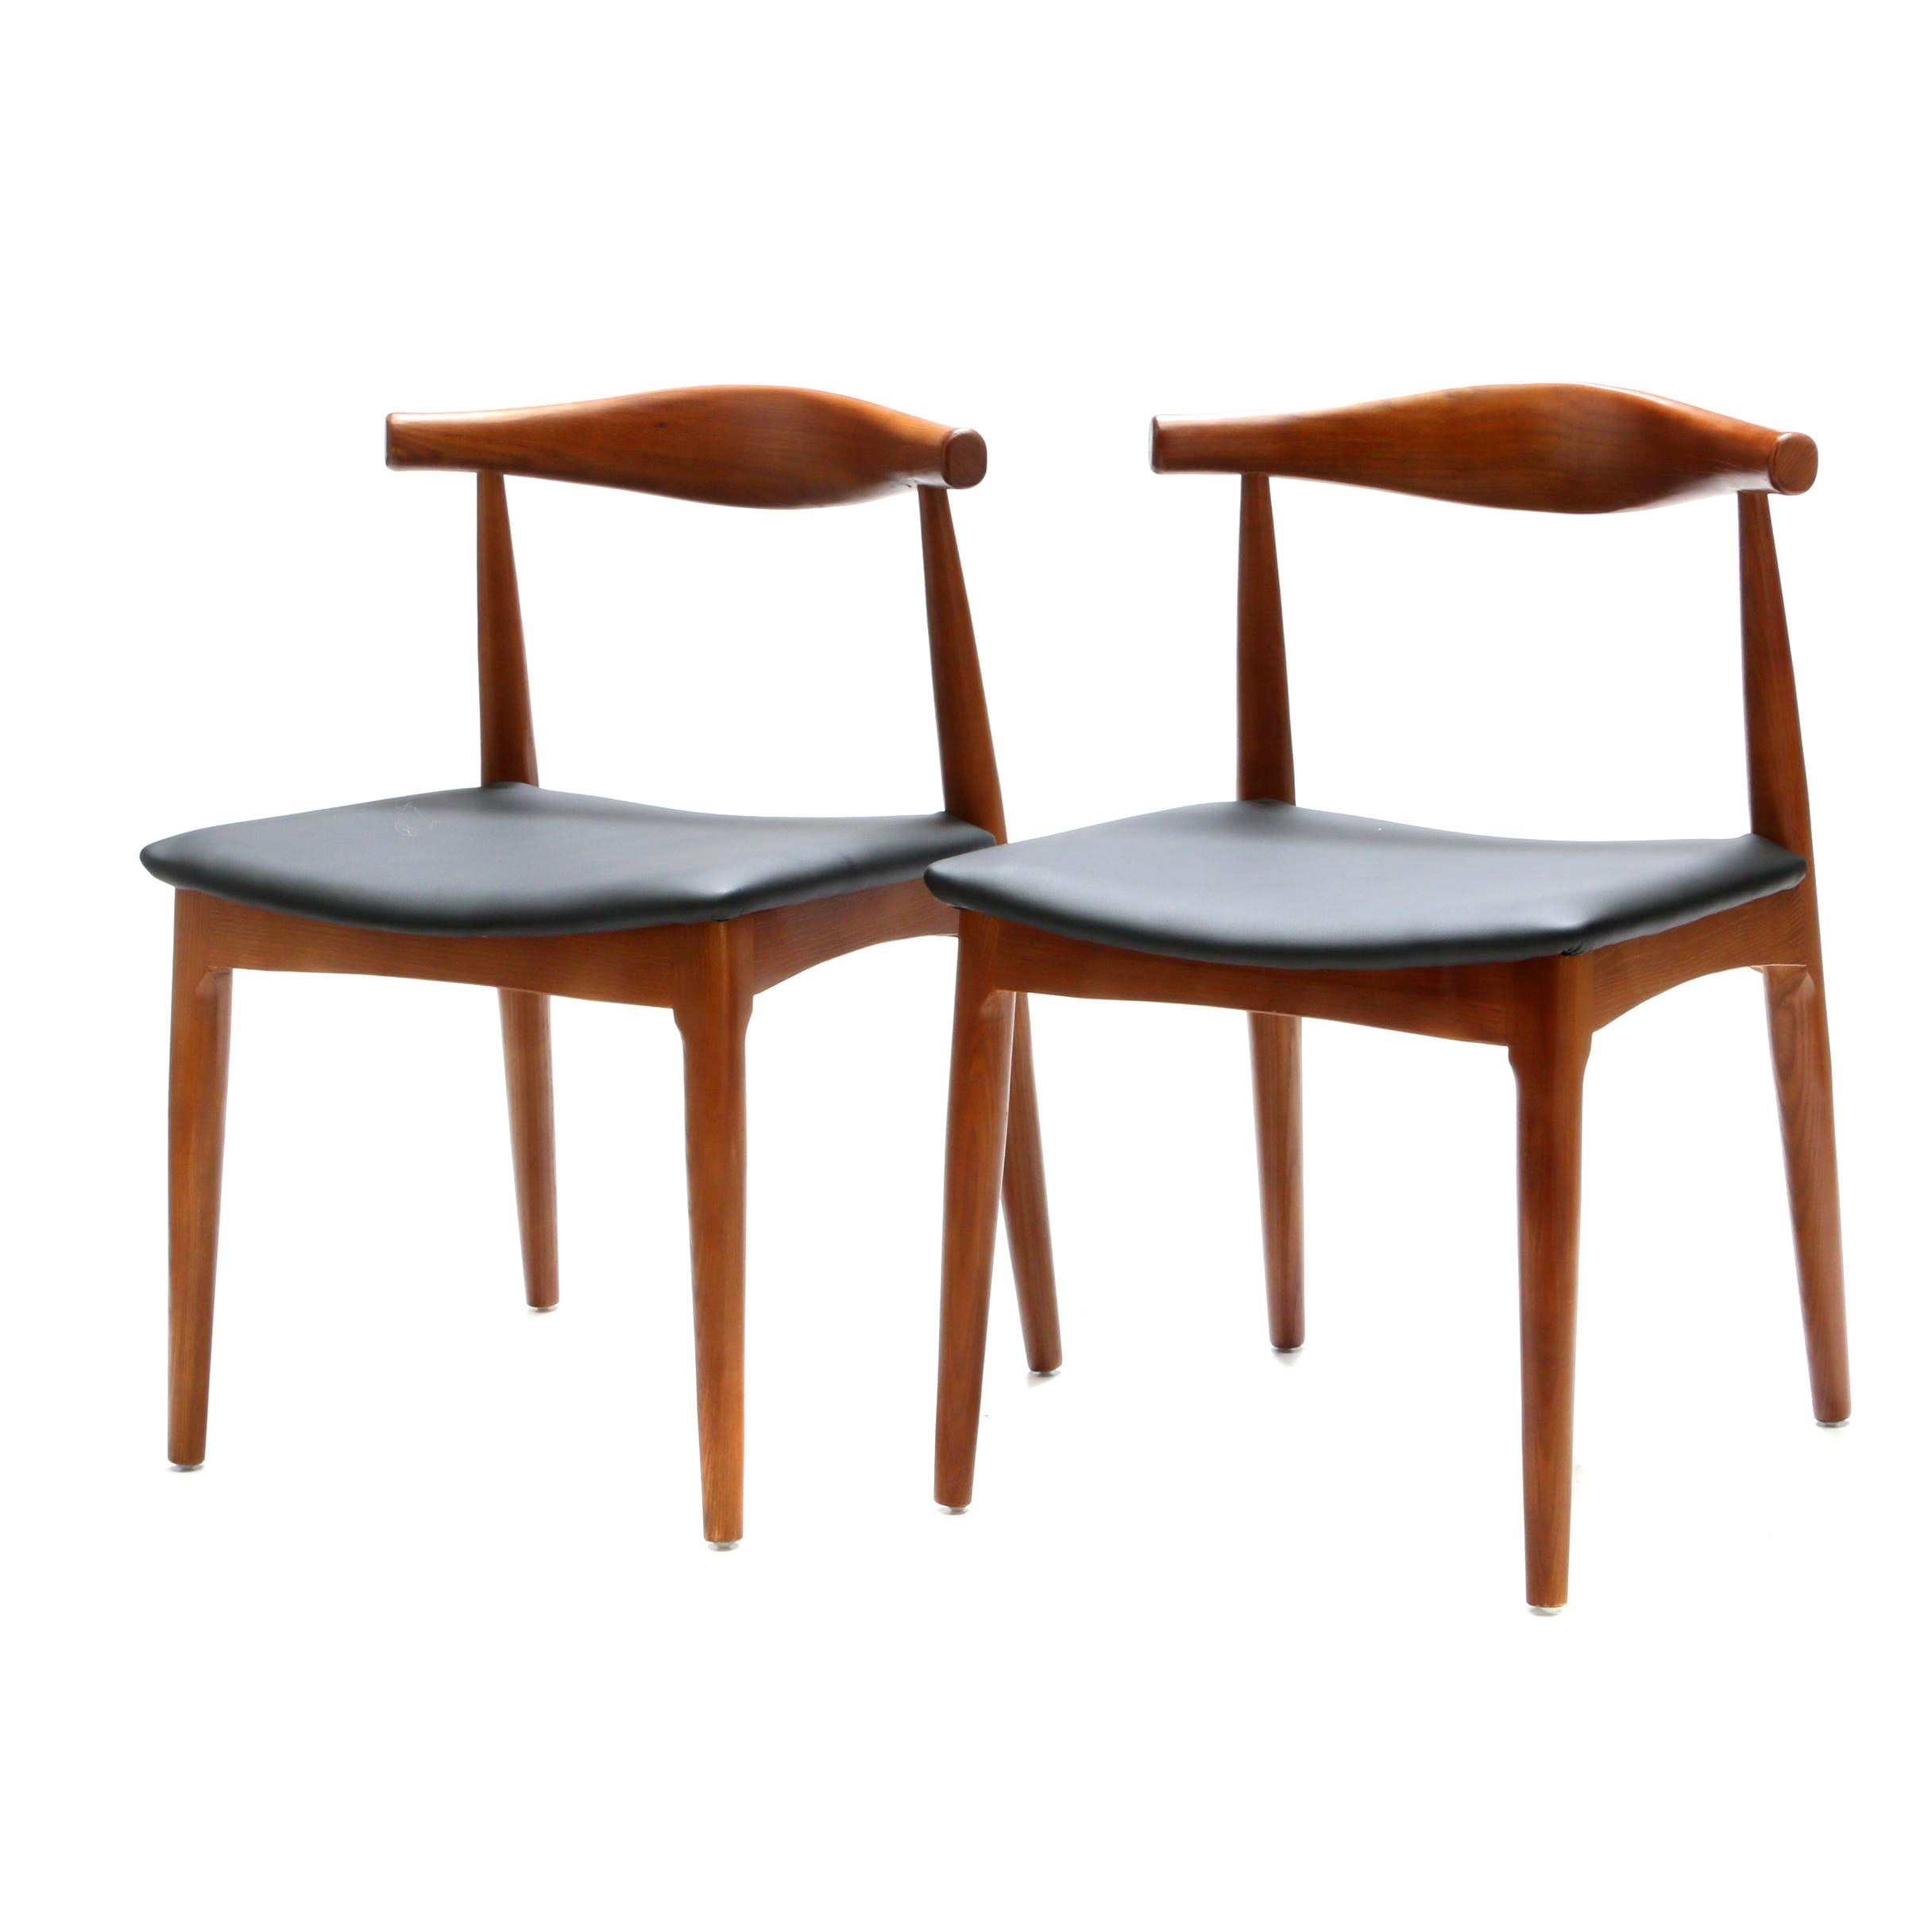 Danish Modern Teak Chairs